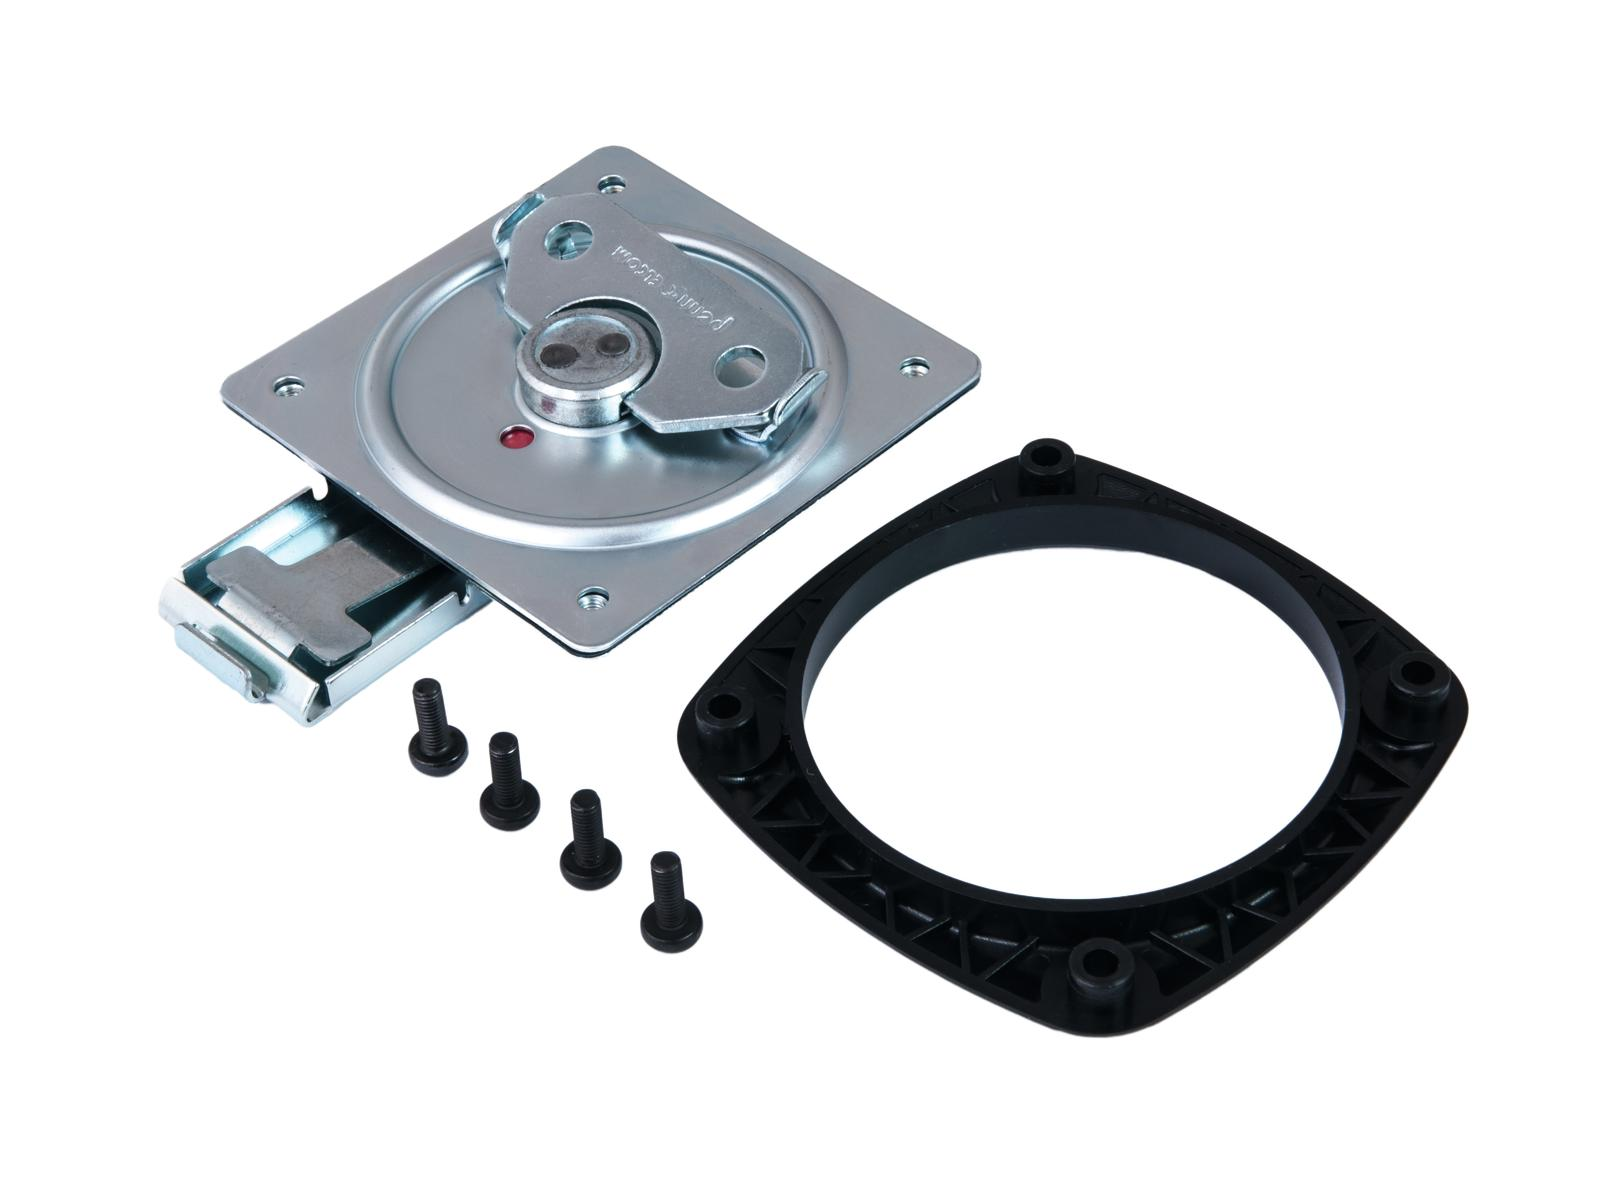 Chiusura Serratura per Flight Case Custodie Per Luci Cdj ROADINGER  7mm